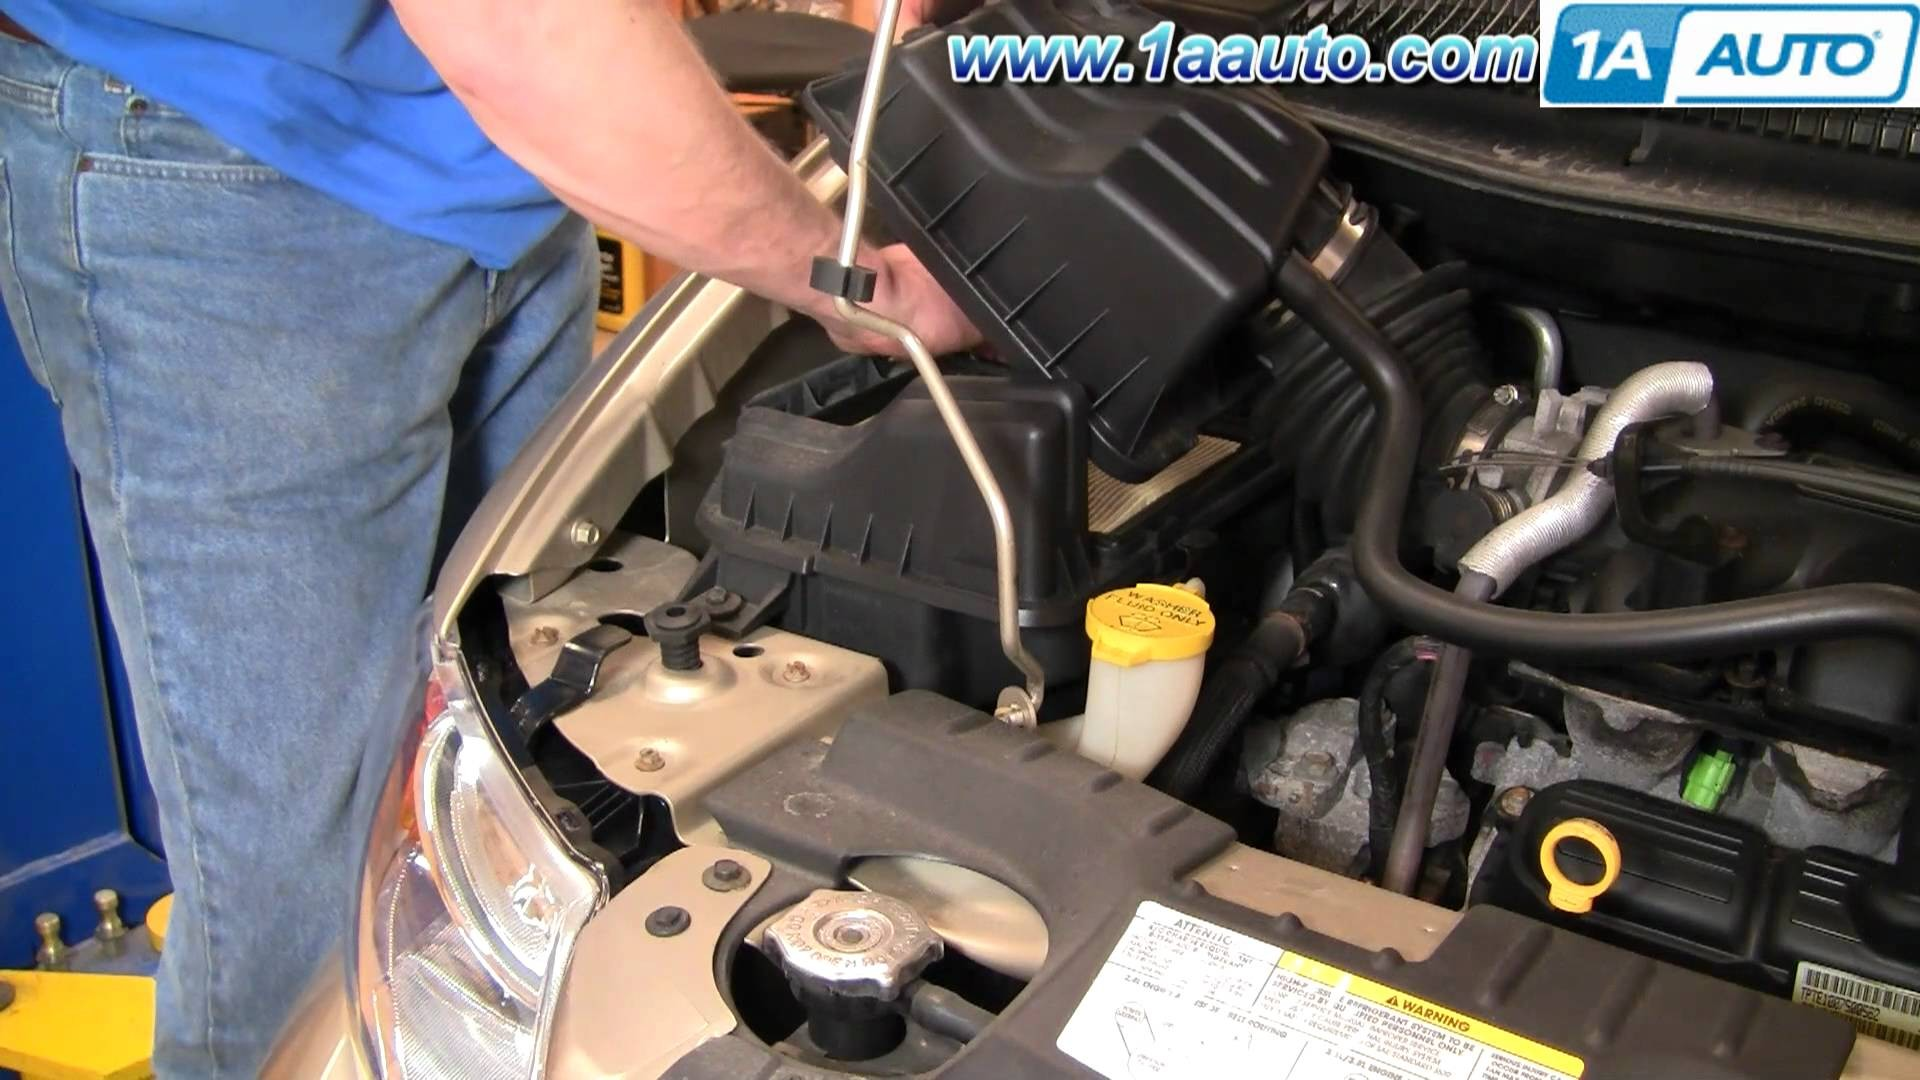 2005 Chrysler town and Country Engine Diagram How to Install Replace Air Filter Chrysler town and Country 01 07 Of 2005 Chrysler town and Country Engine Diagram